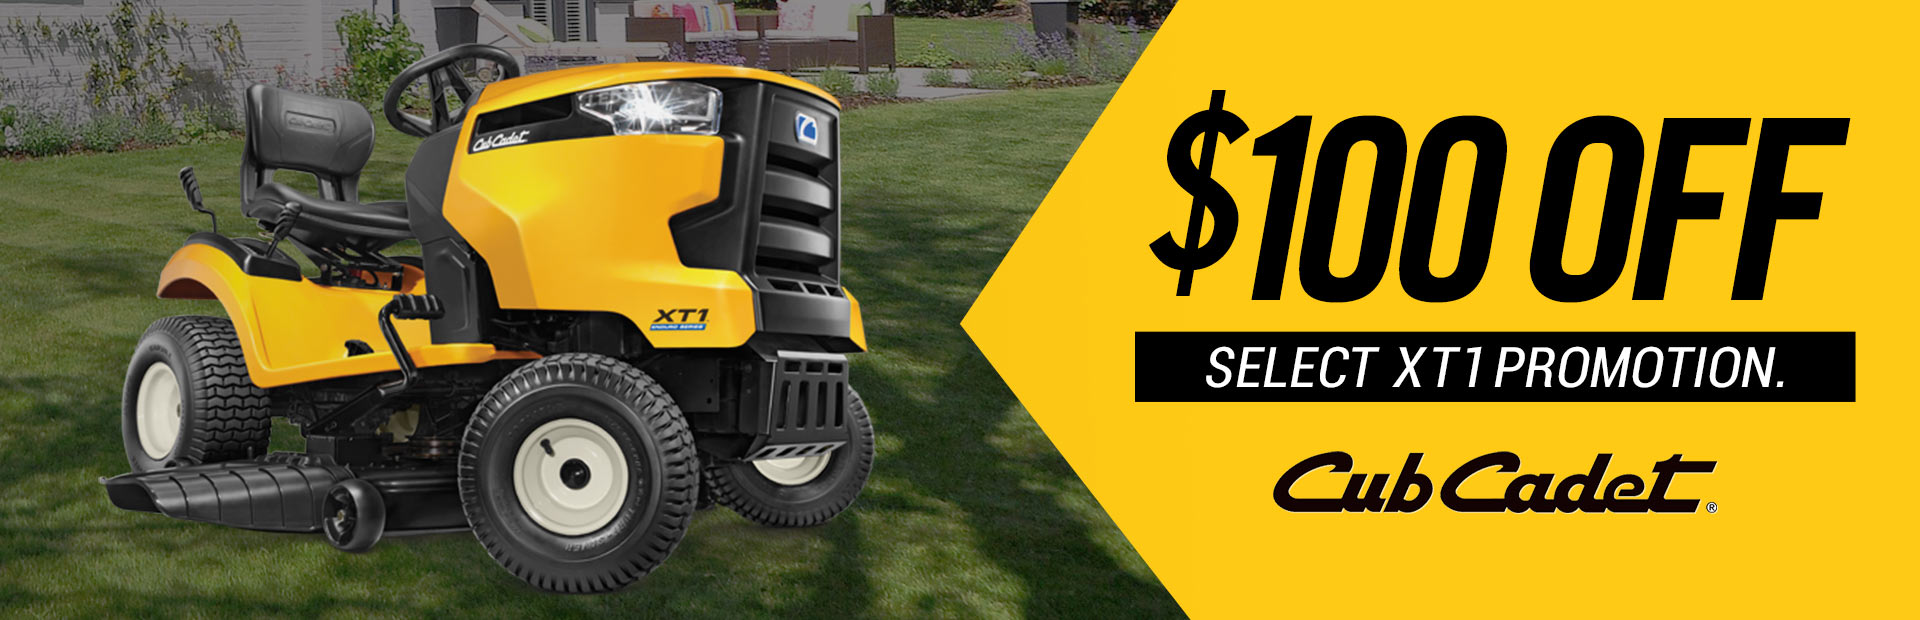 Cub Cadet: $100 Off Select XT1 Promotion